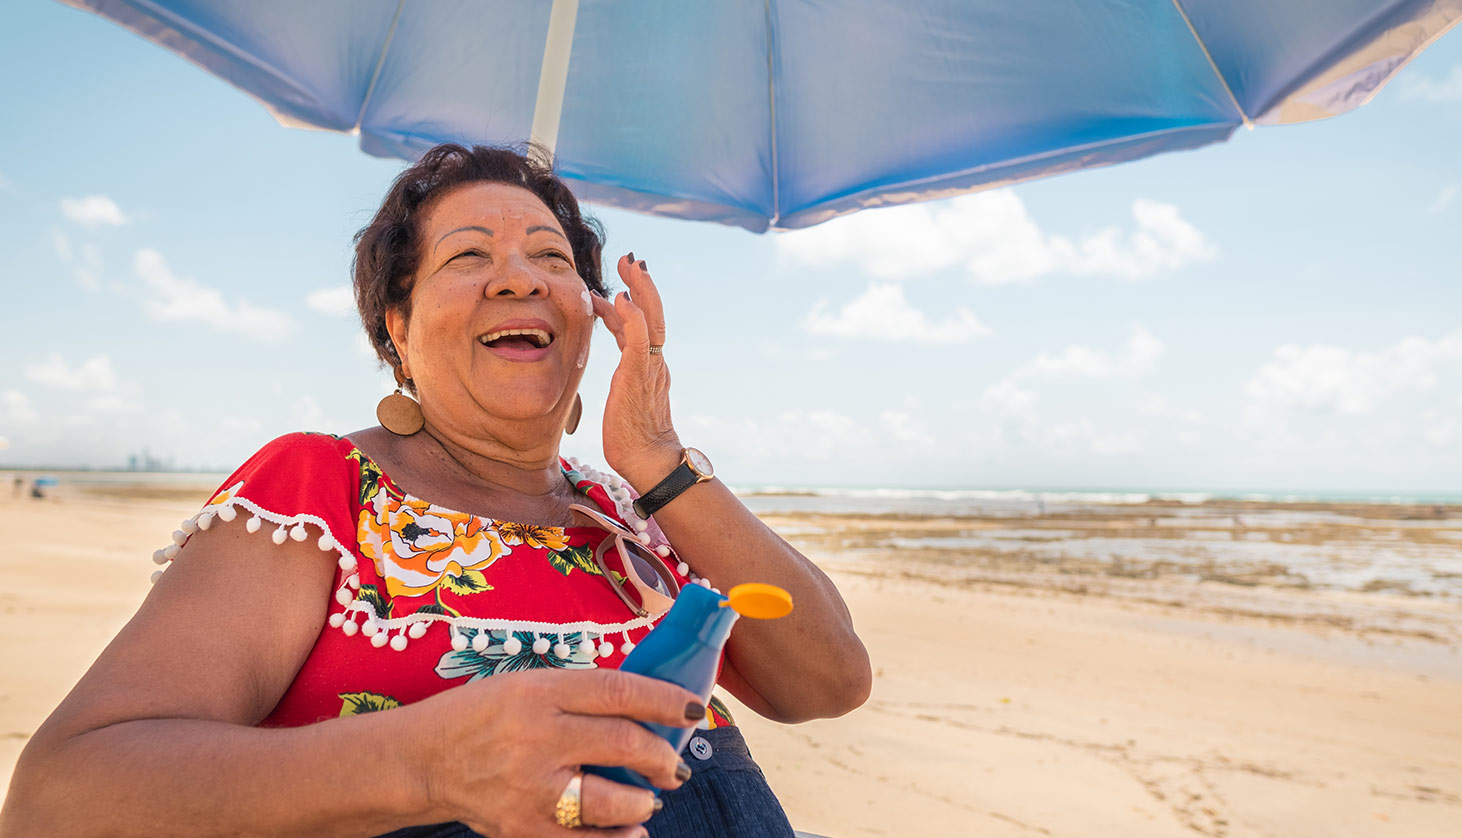 Beach Safety Guide for Seniors and Their Caretakers